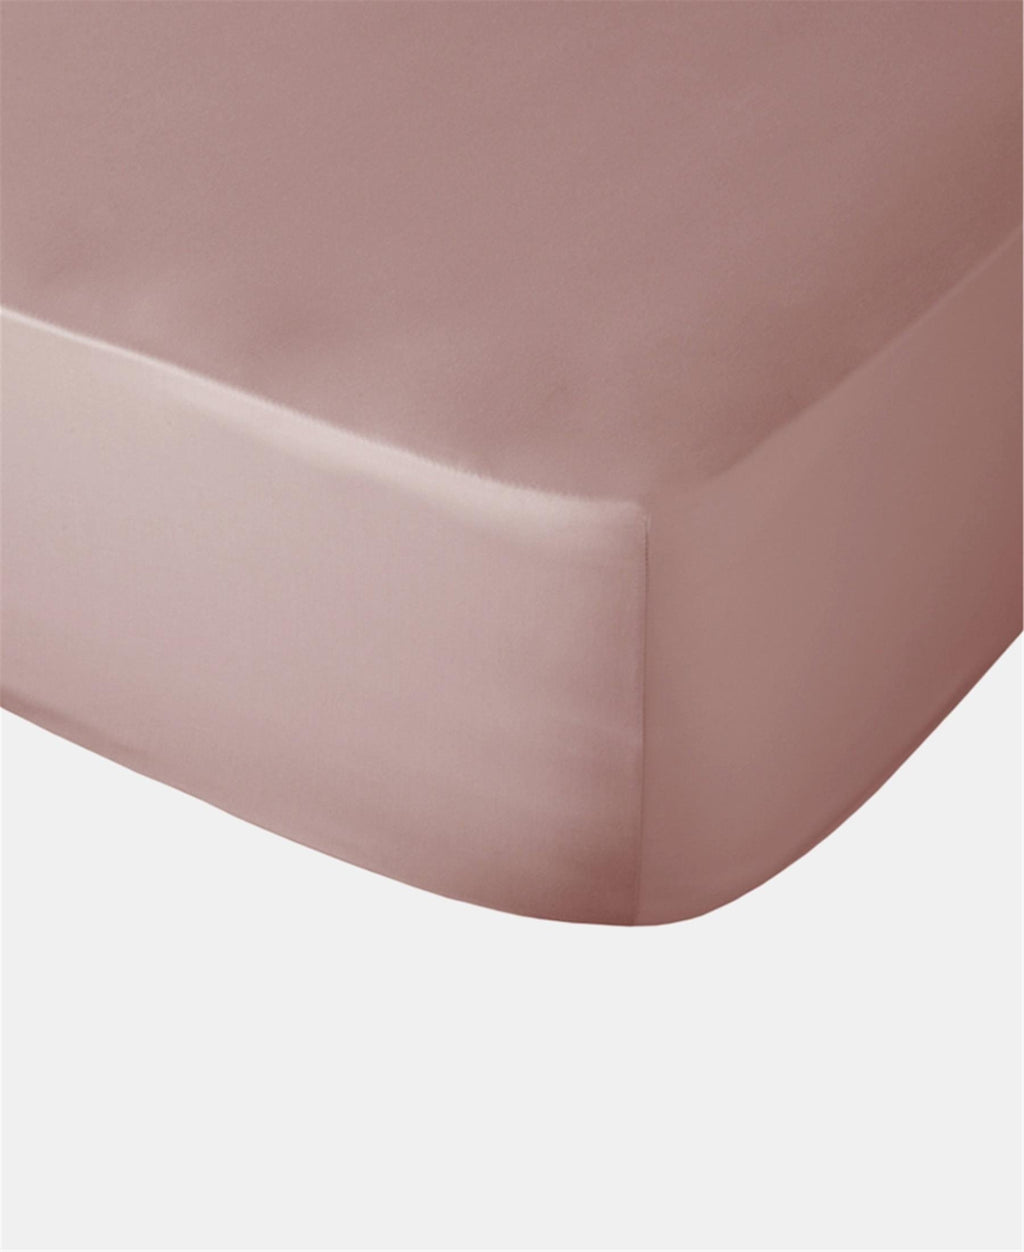 Horrockses 180 Thread Count Fitted Sheet - Dusty Pink